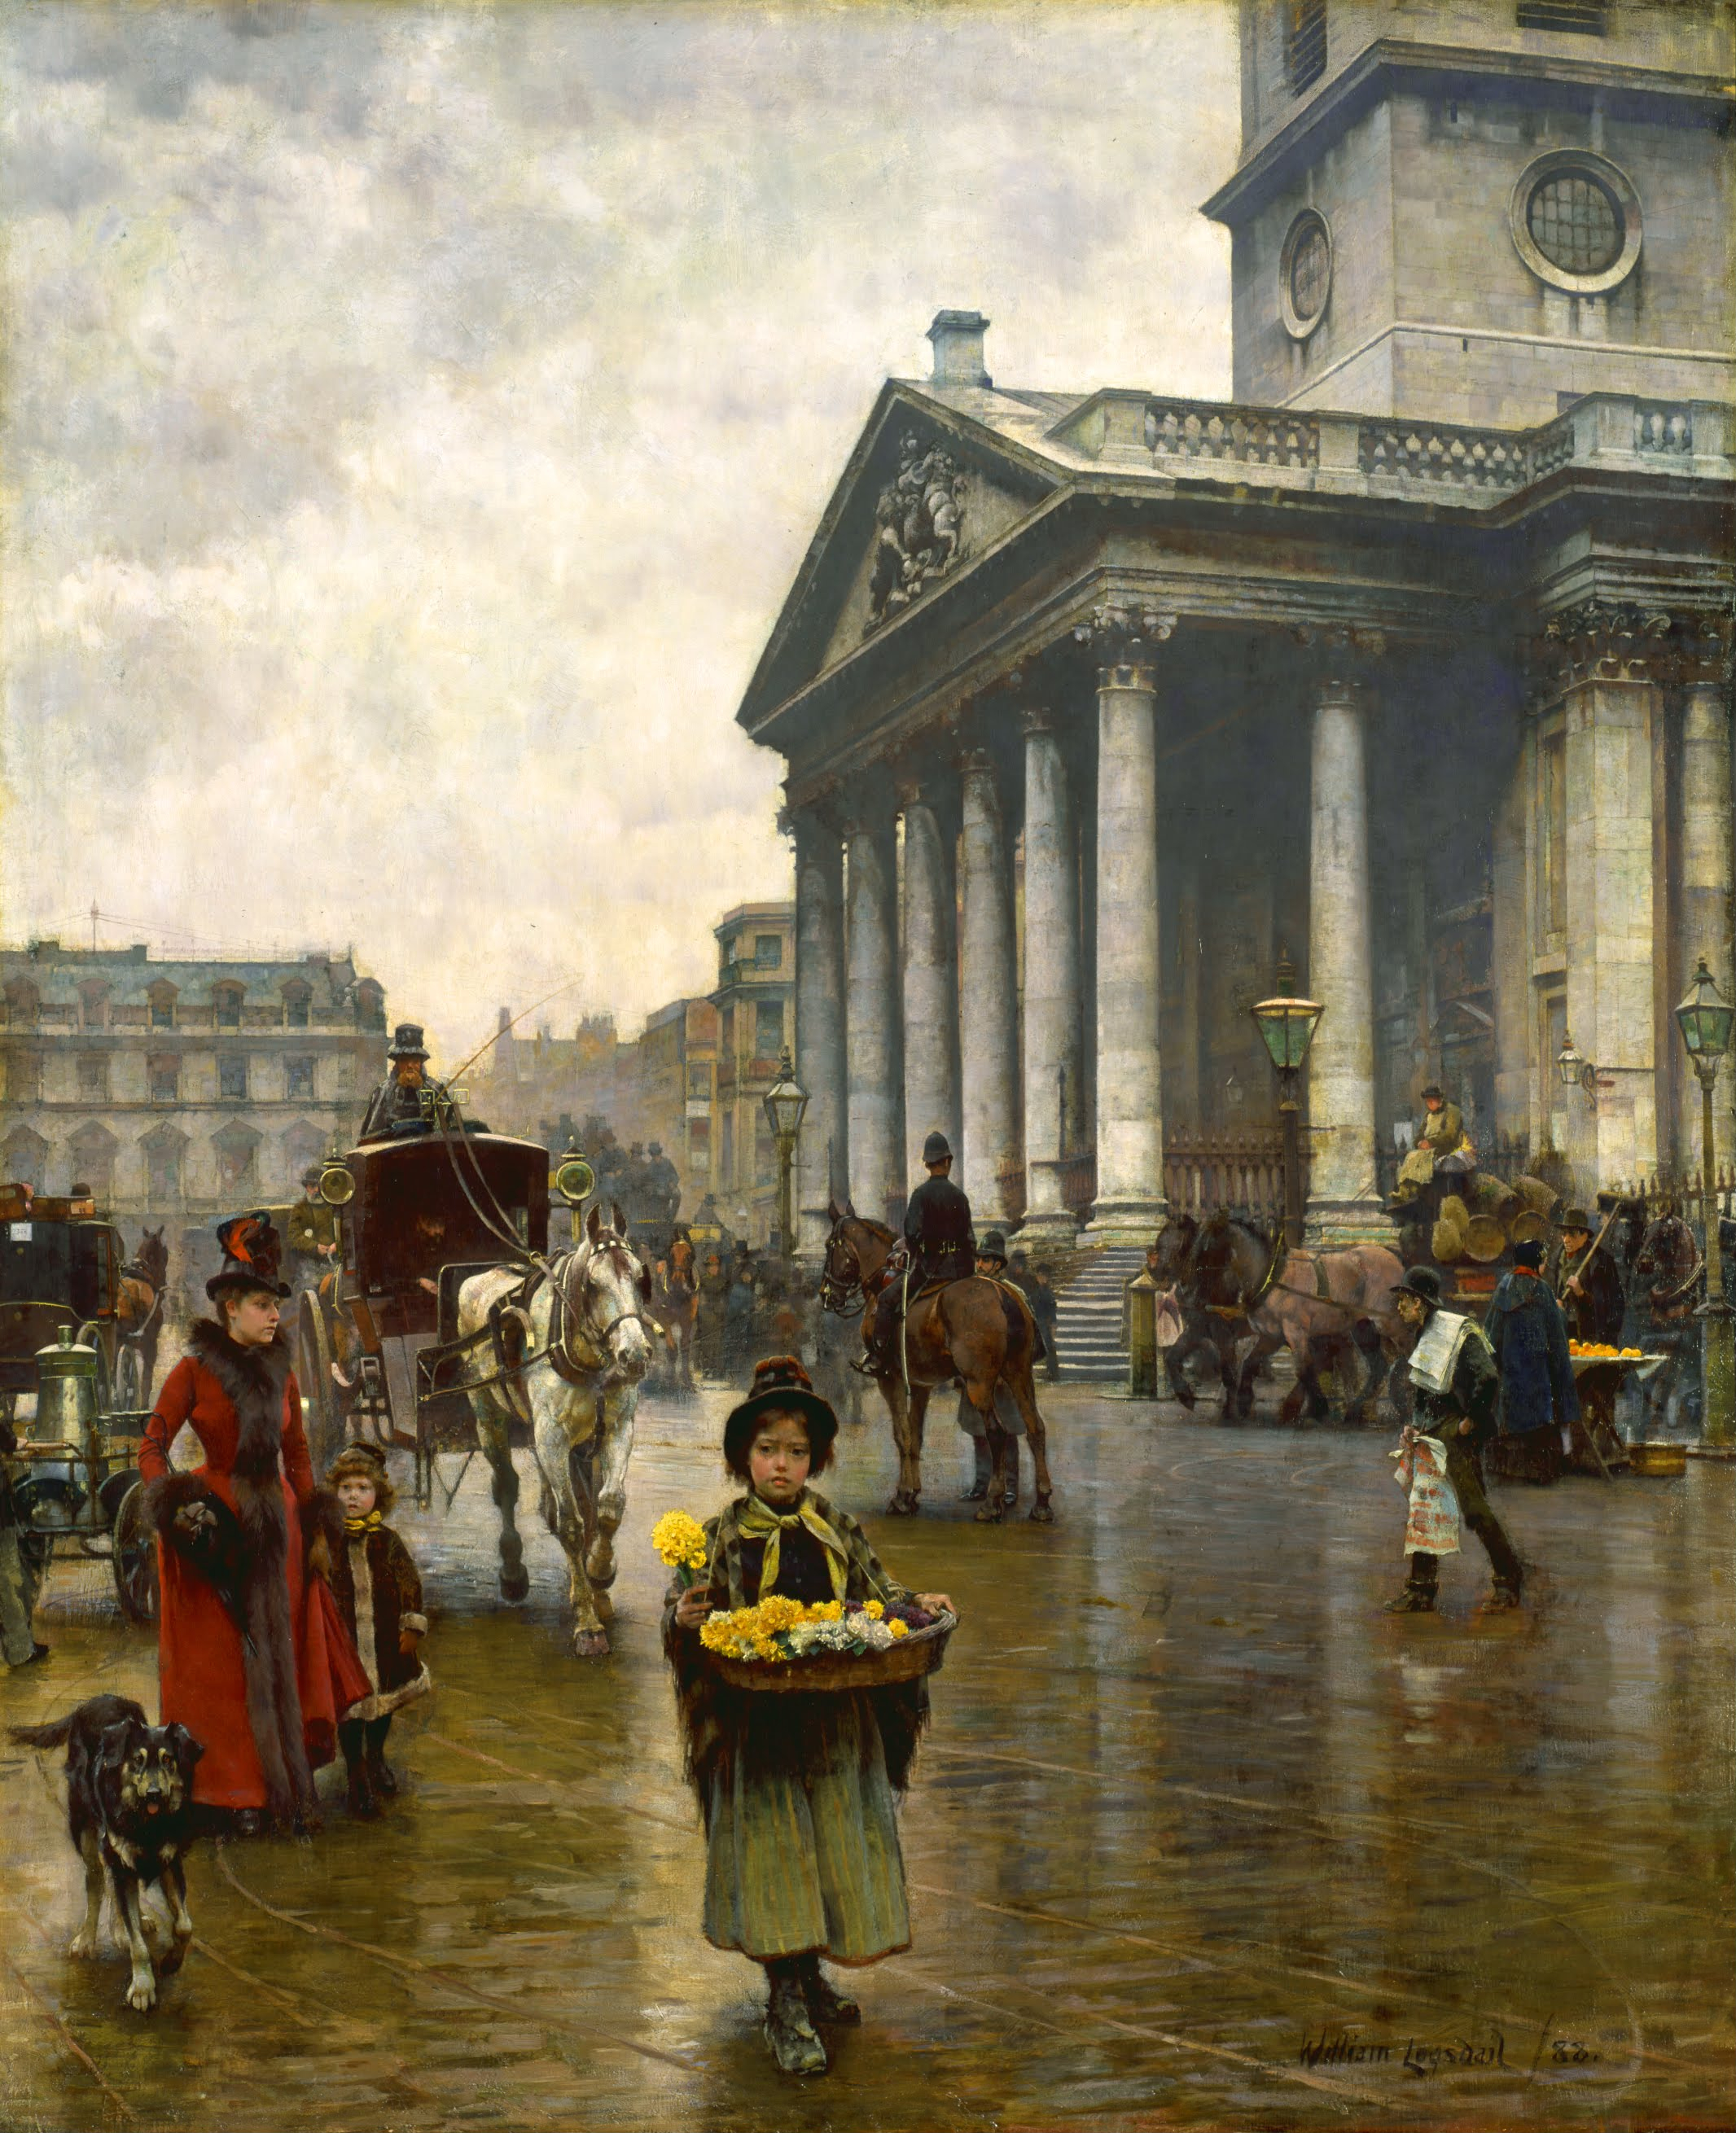 William_Logsdail_-_St_Martin-in-the-Fields_-_Google_Art_Project